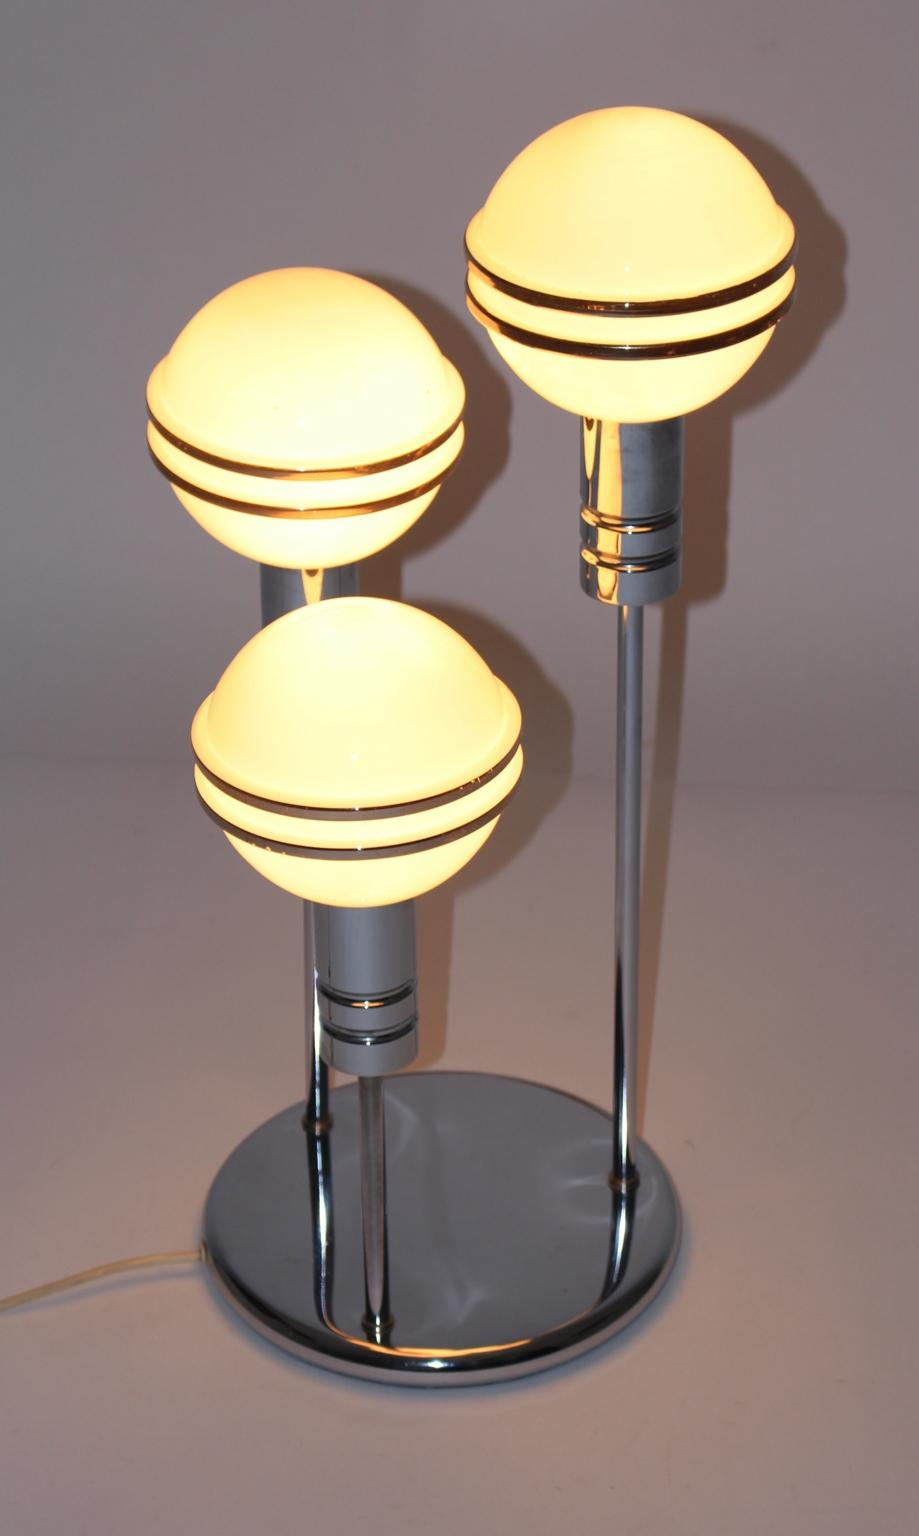 Art Deco Table Lamp 1920 180 S From Nobarock On Rubylux